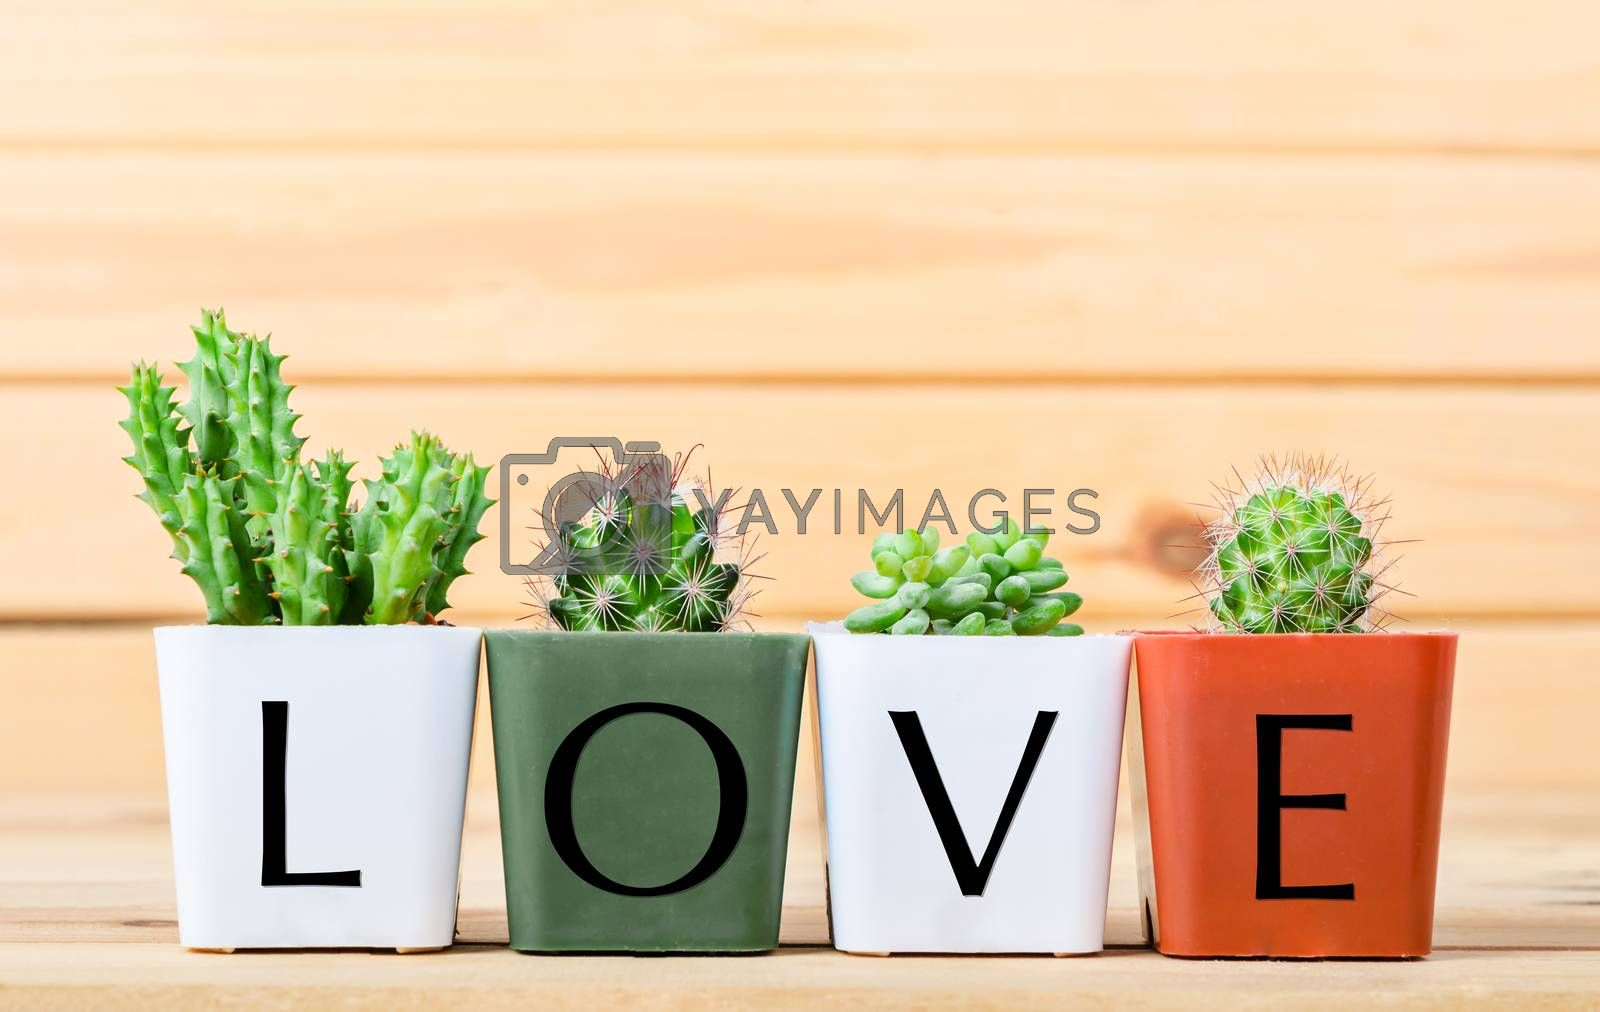 Natural Cactus Plants with love wording on light wooden background